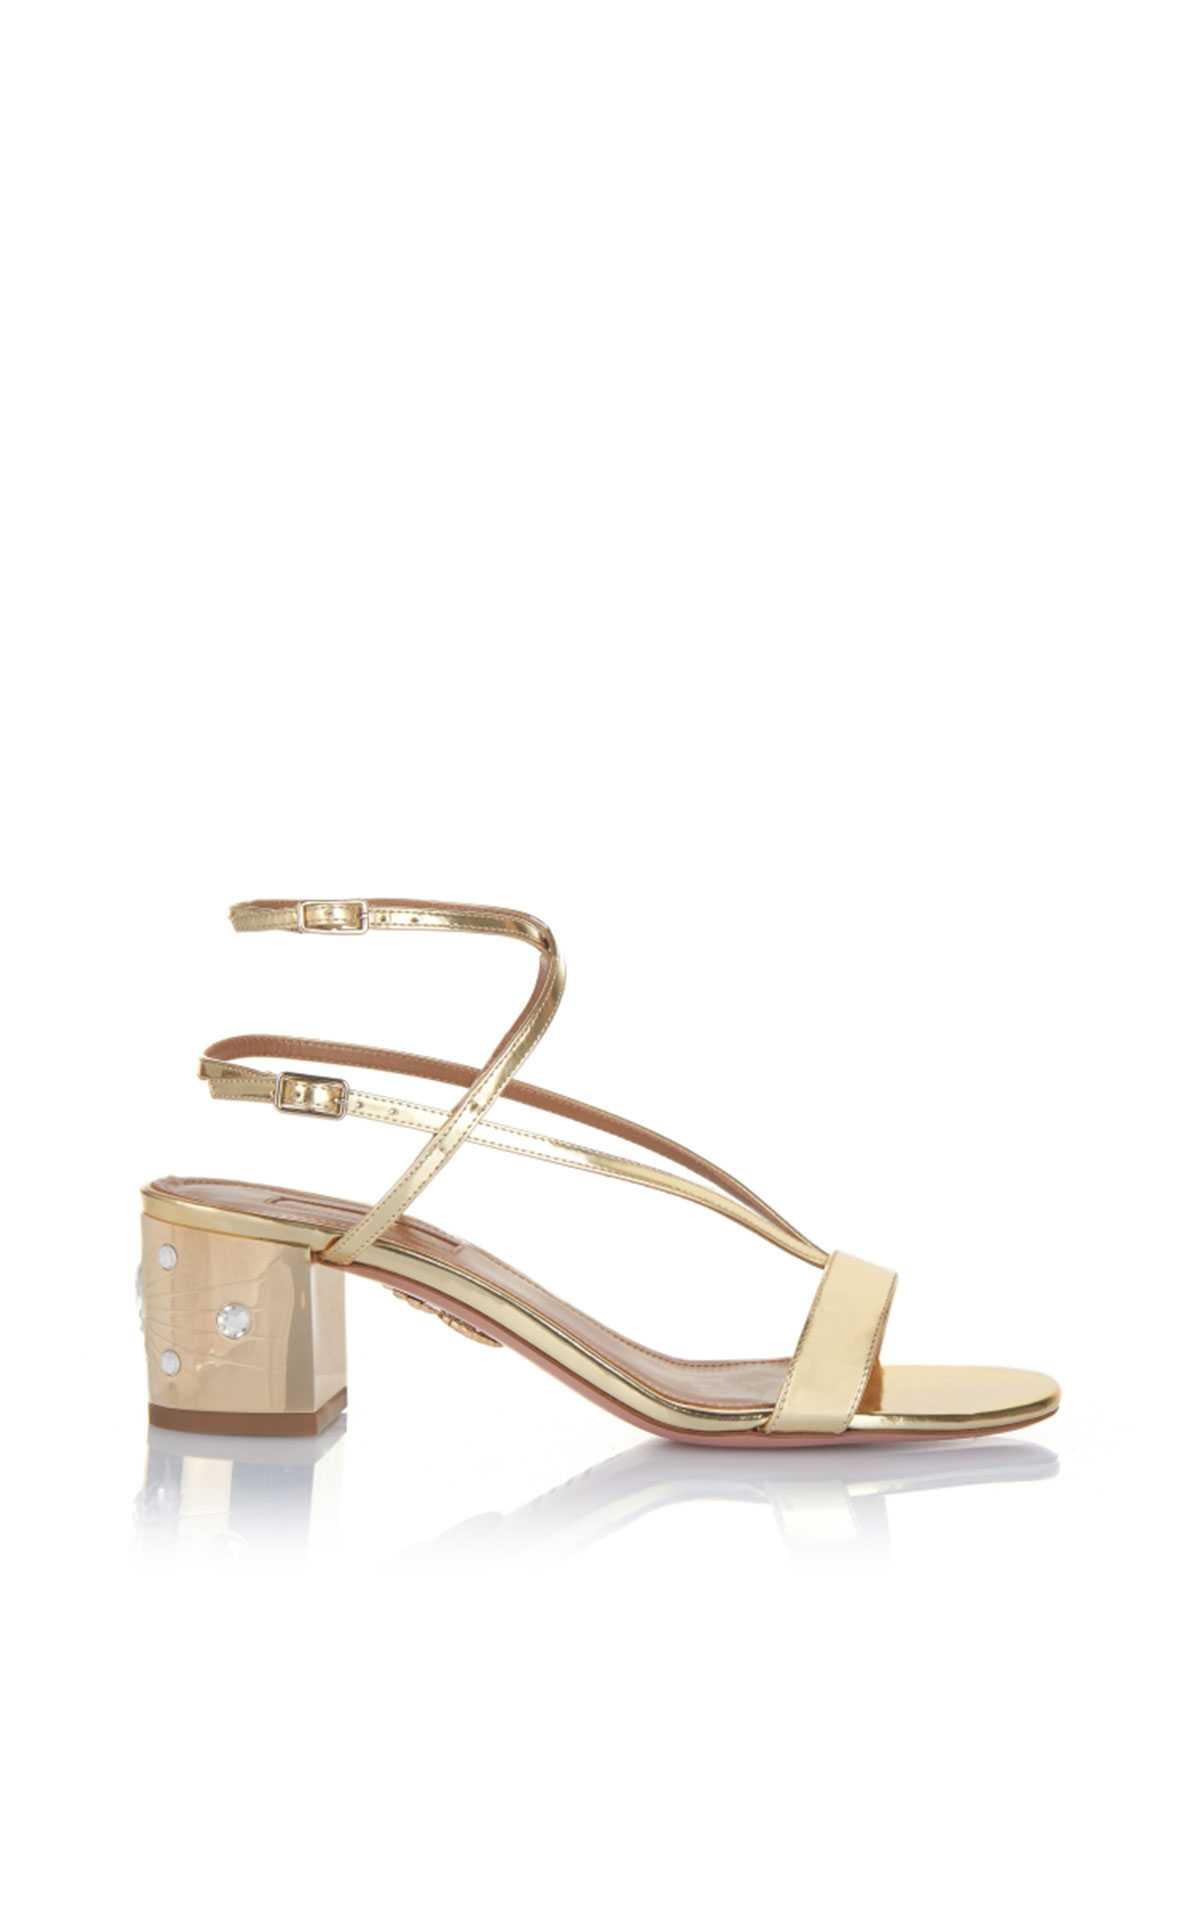 Aquazzura Sunset siren sandal 50 light gold from Bicester Village